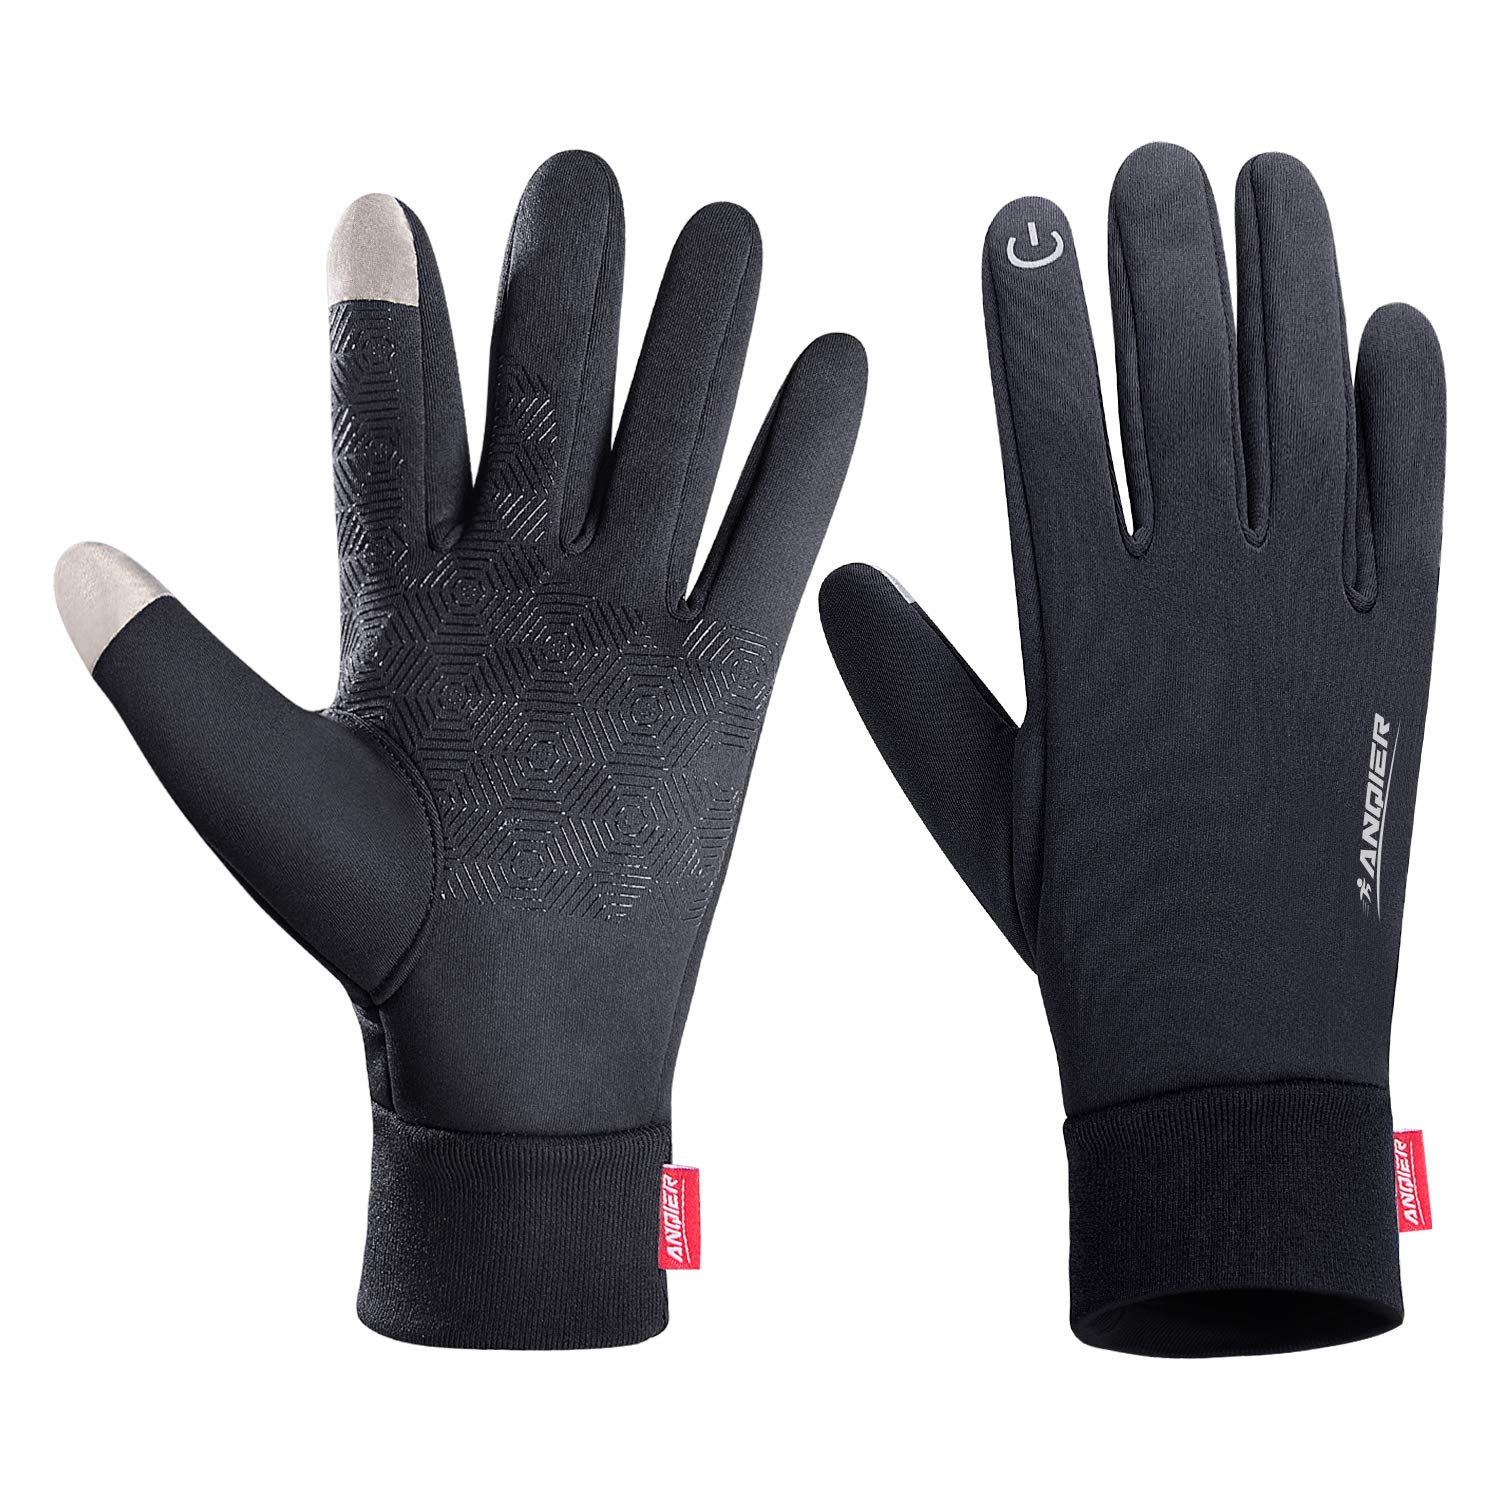 Lanyi Winter Warm Gloves Touchscreen Windproof Anti-slip Outdoor Cycling Work Snowboard Driving Black Gloves Men Women (X-Large)